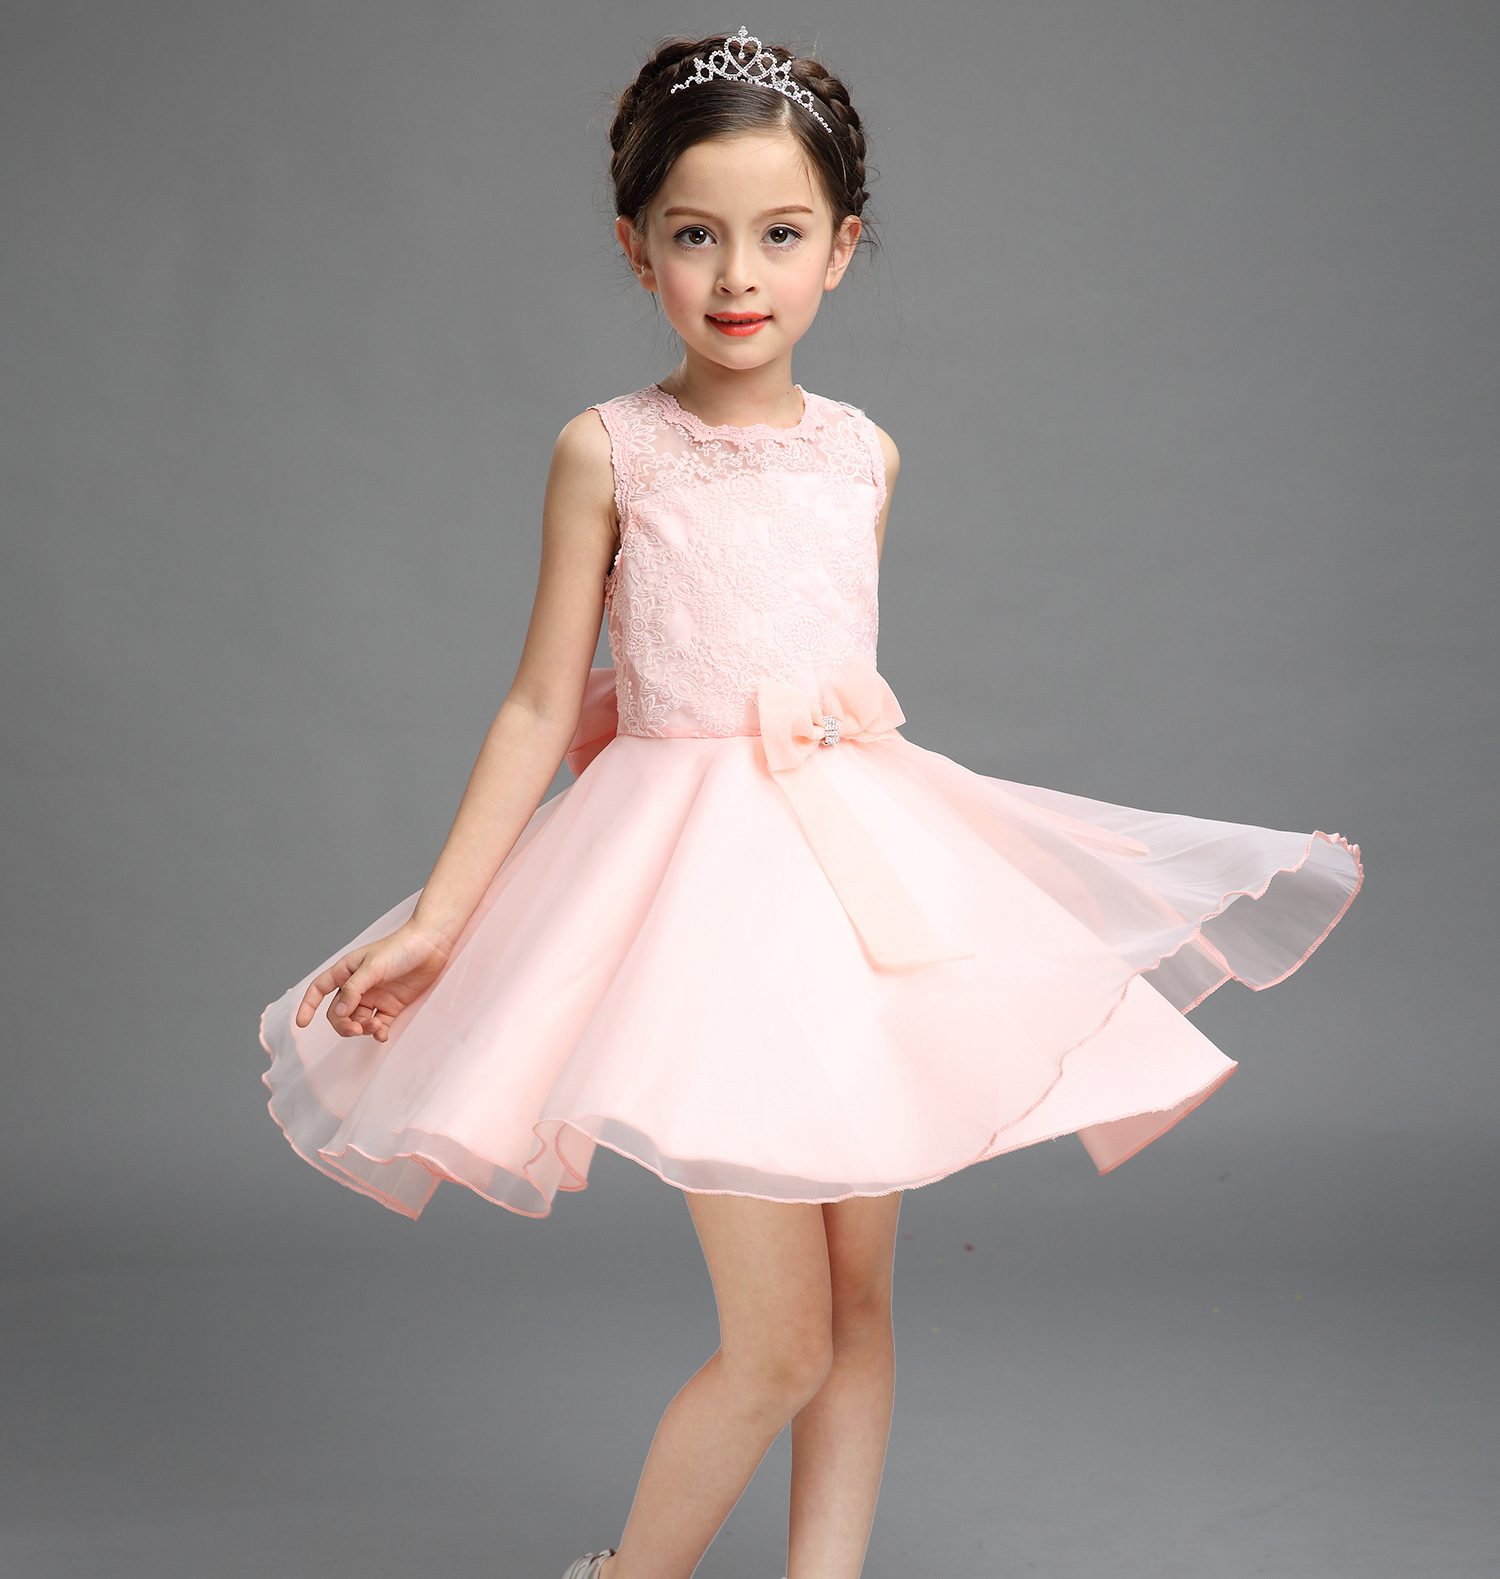 Summer dress girls princess white wedding dress costume kids summer dress girls princess white wedding dress costume kids infant petals child bridesmaid toddler vestido party dresses 3 10 y in dresses from mother ombrellifo Image collections